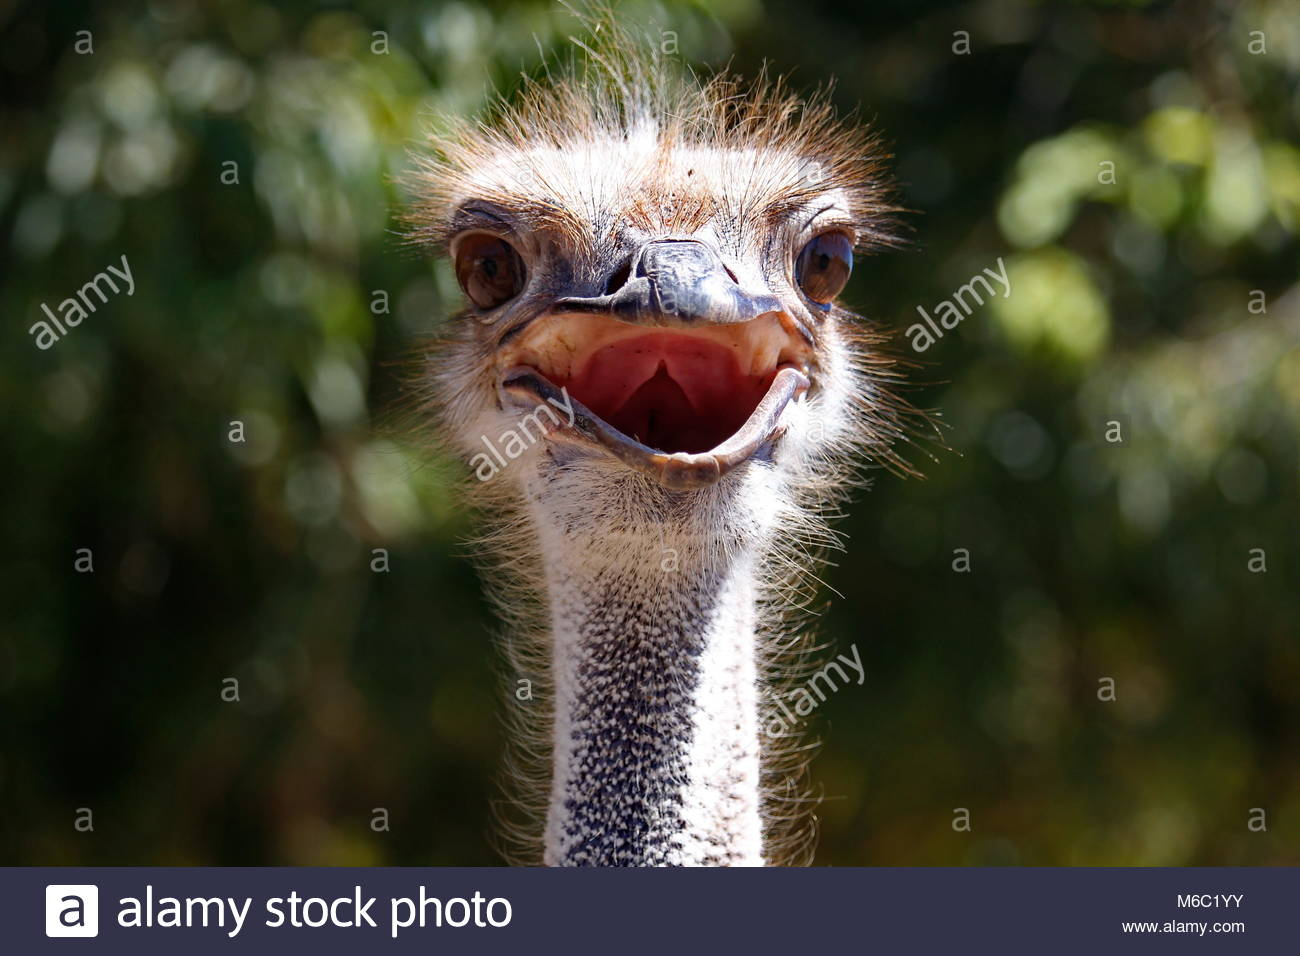 The ostrich is a large, flightless bird native to Australia with a gawky, amusing stare which seems sometimes a - Stock Image